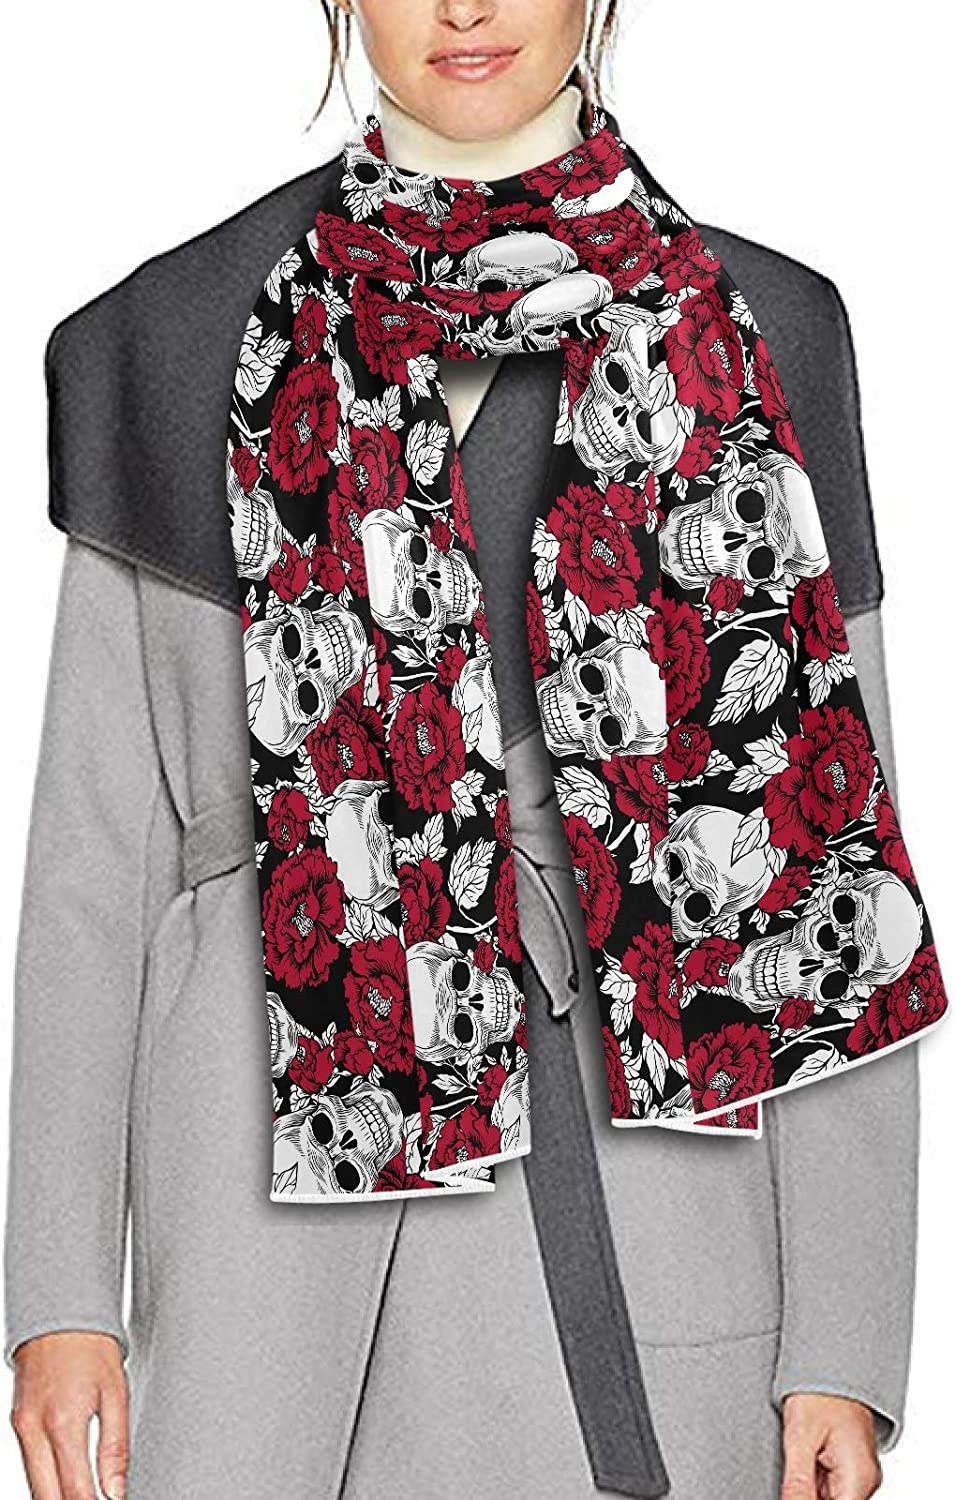 Scarf for Women and Men Day Of The Dead Gold Skull Shawl Wraps Blanket Scarf Warm soft Winter Oversized Scarves Lightweight